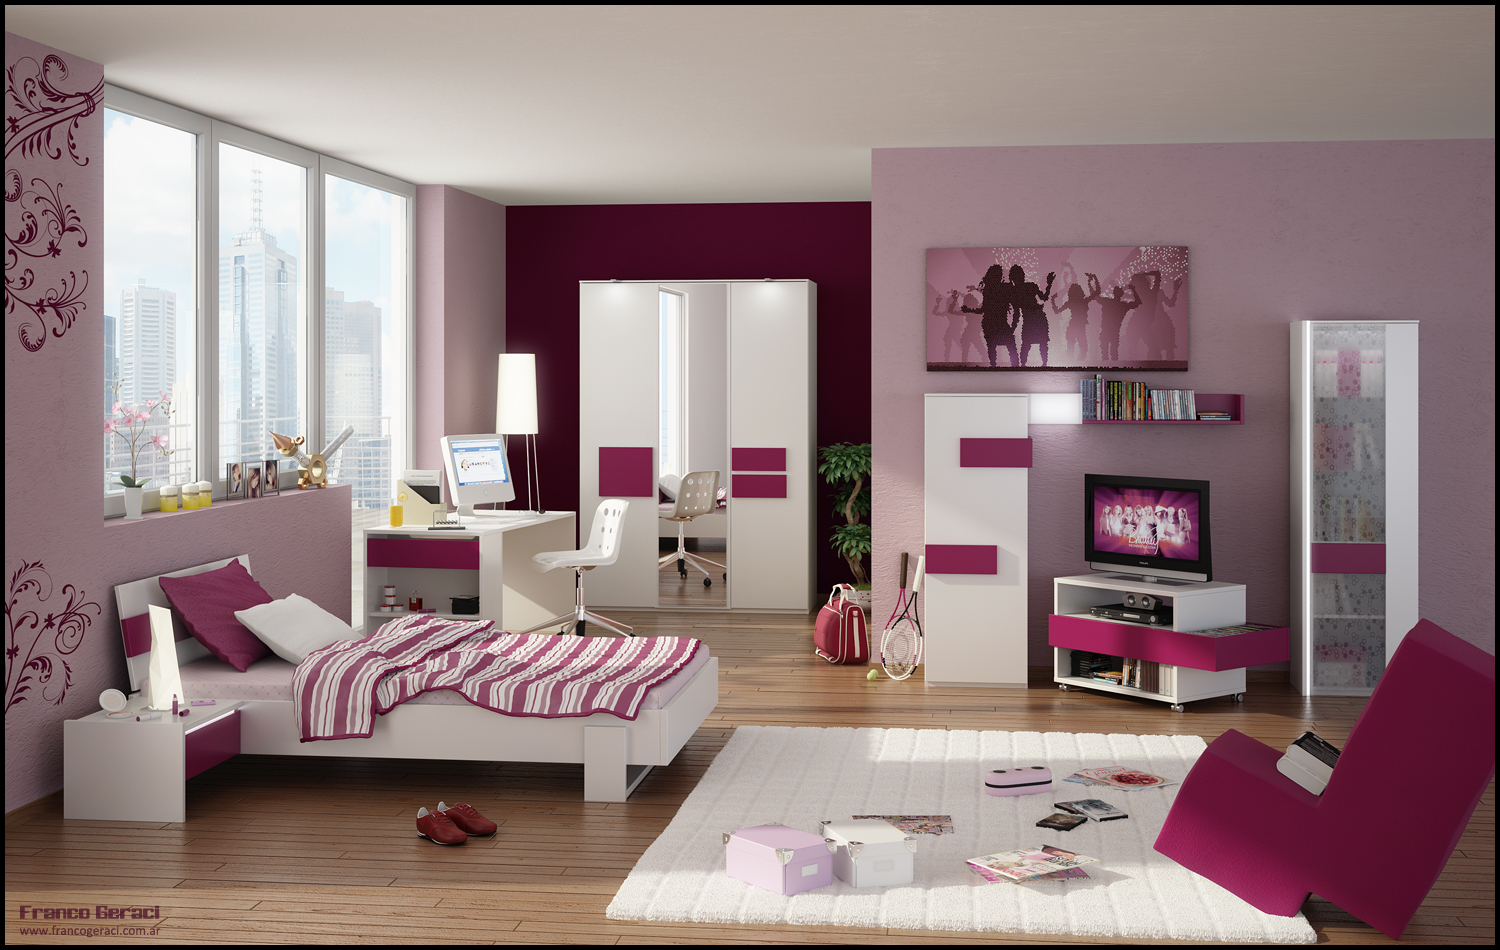 Best interior design feminine home designer for Interior designs for bedrooms ideas